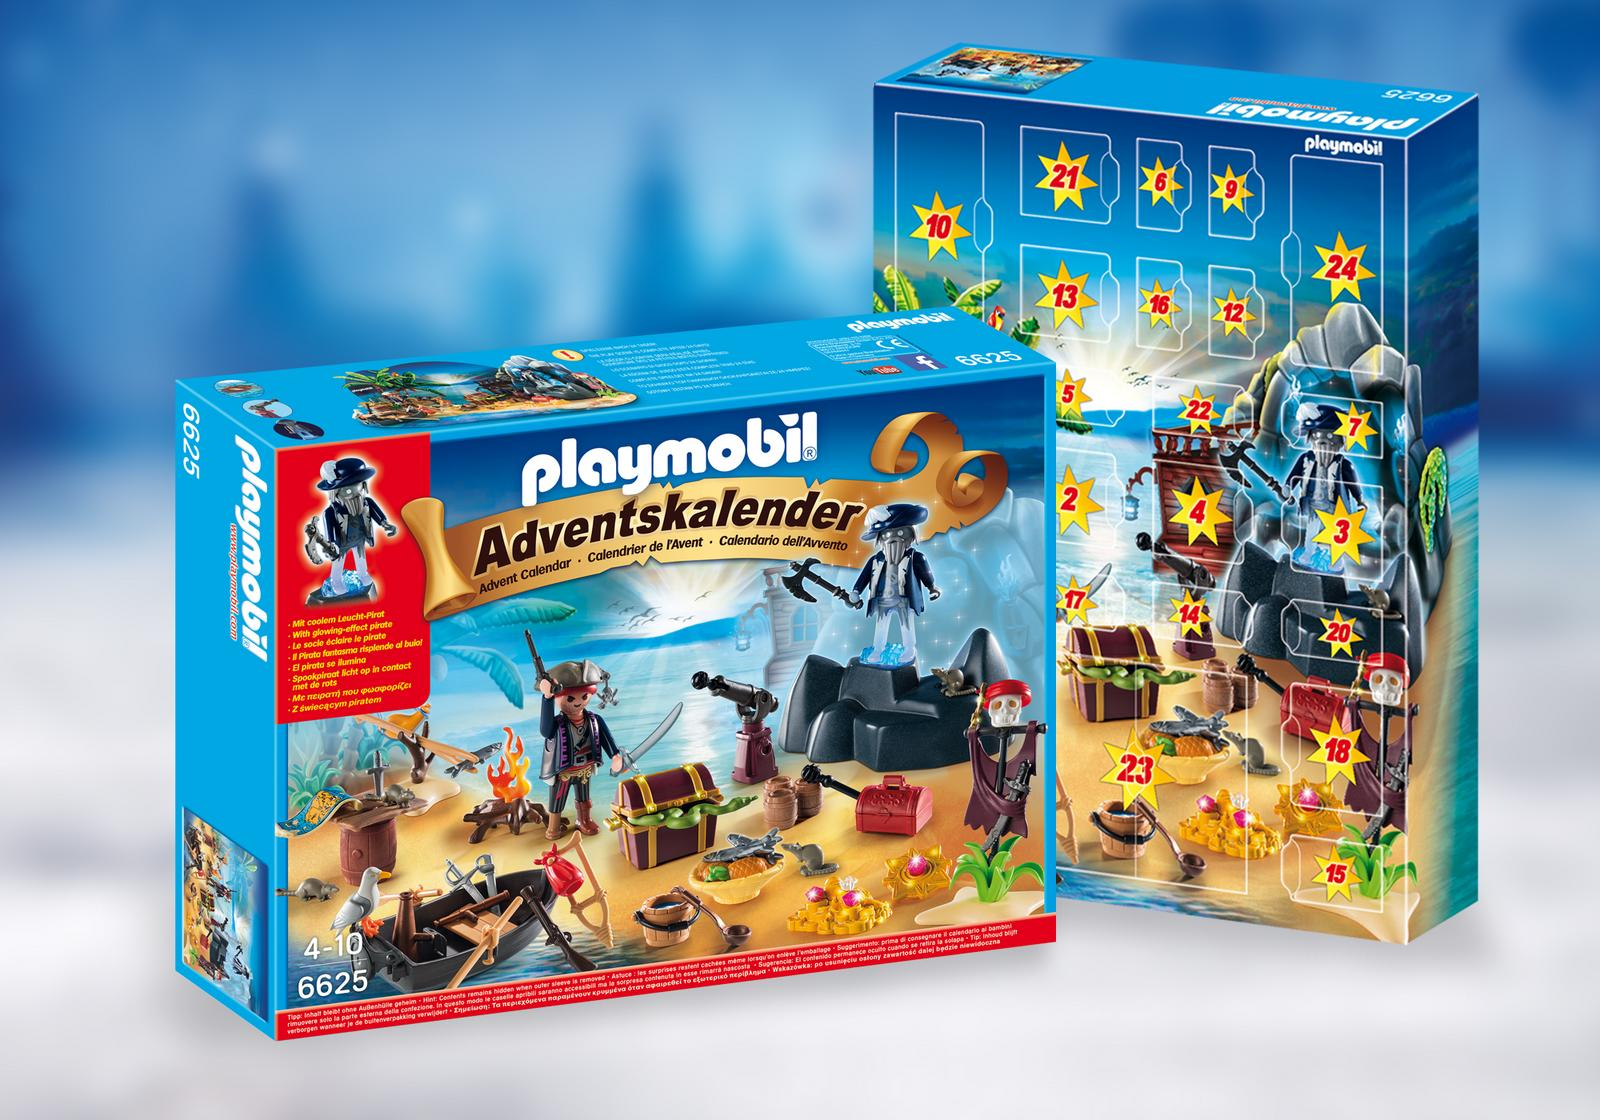 playmobil advent calendars johns hobbies. Black Bedroom Furniture Sets. Home Design Ideas